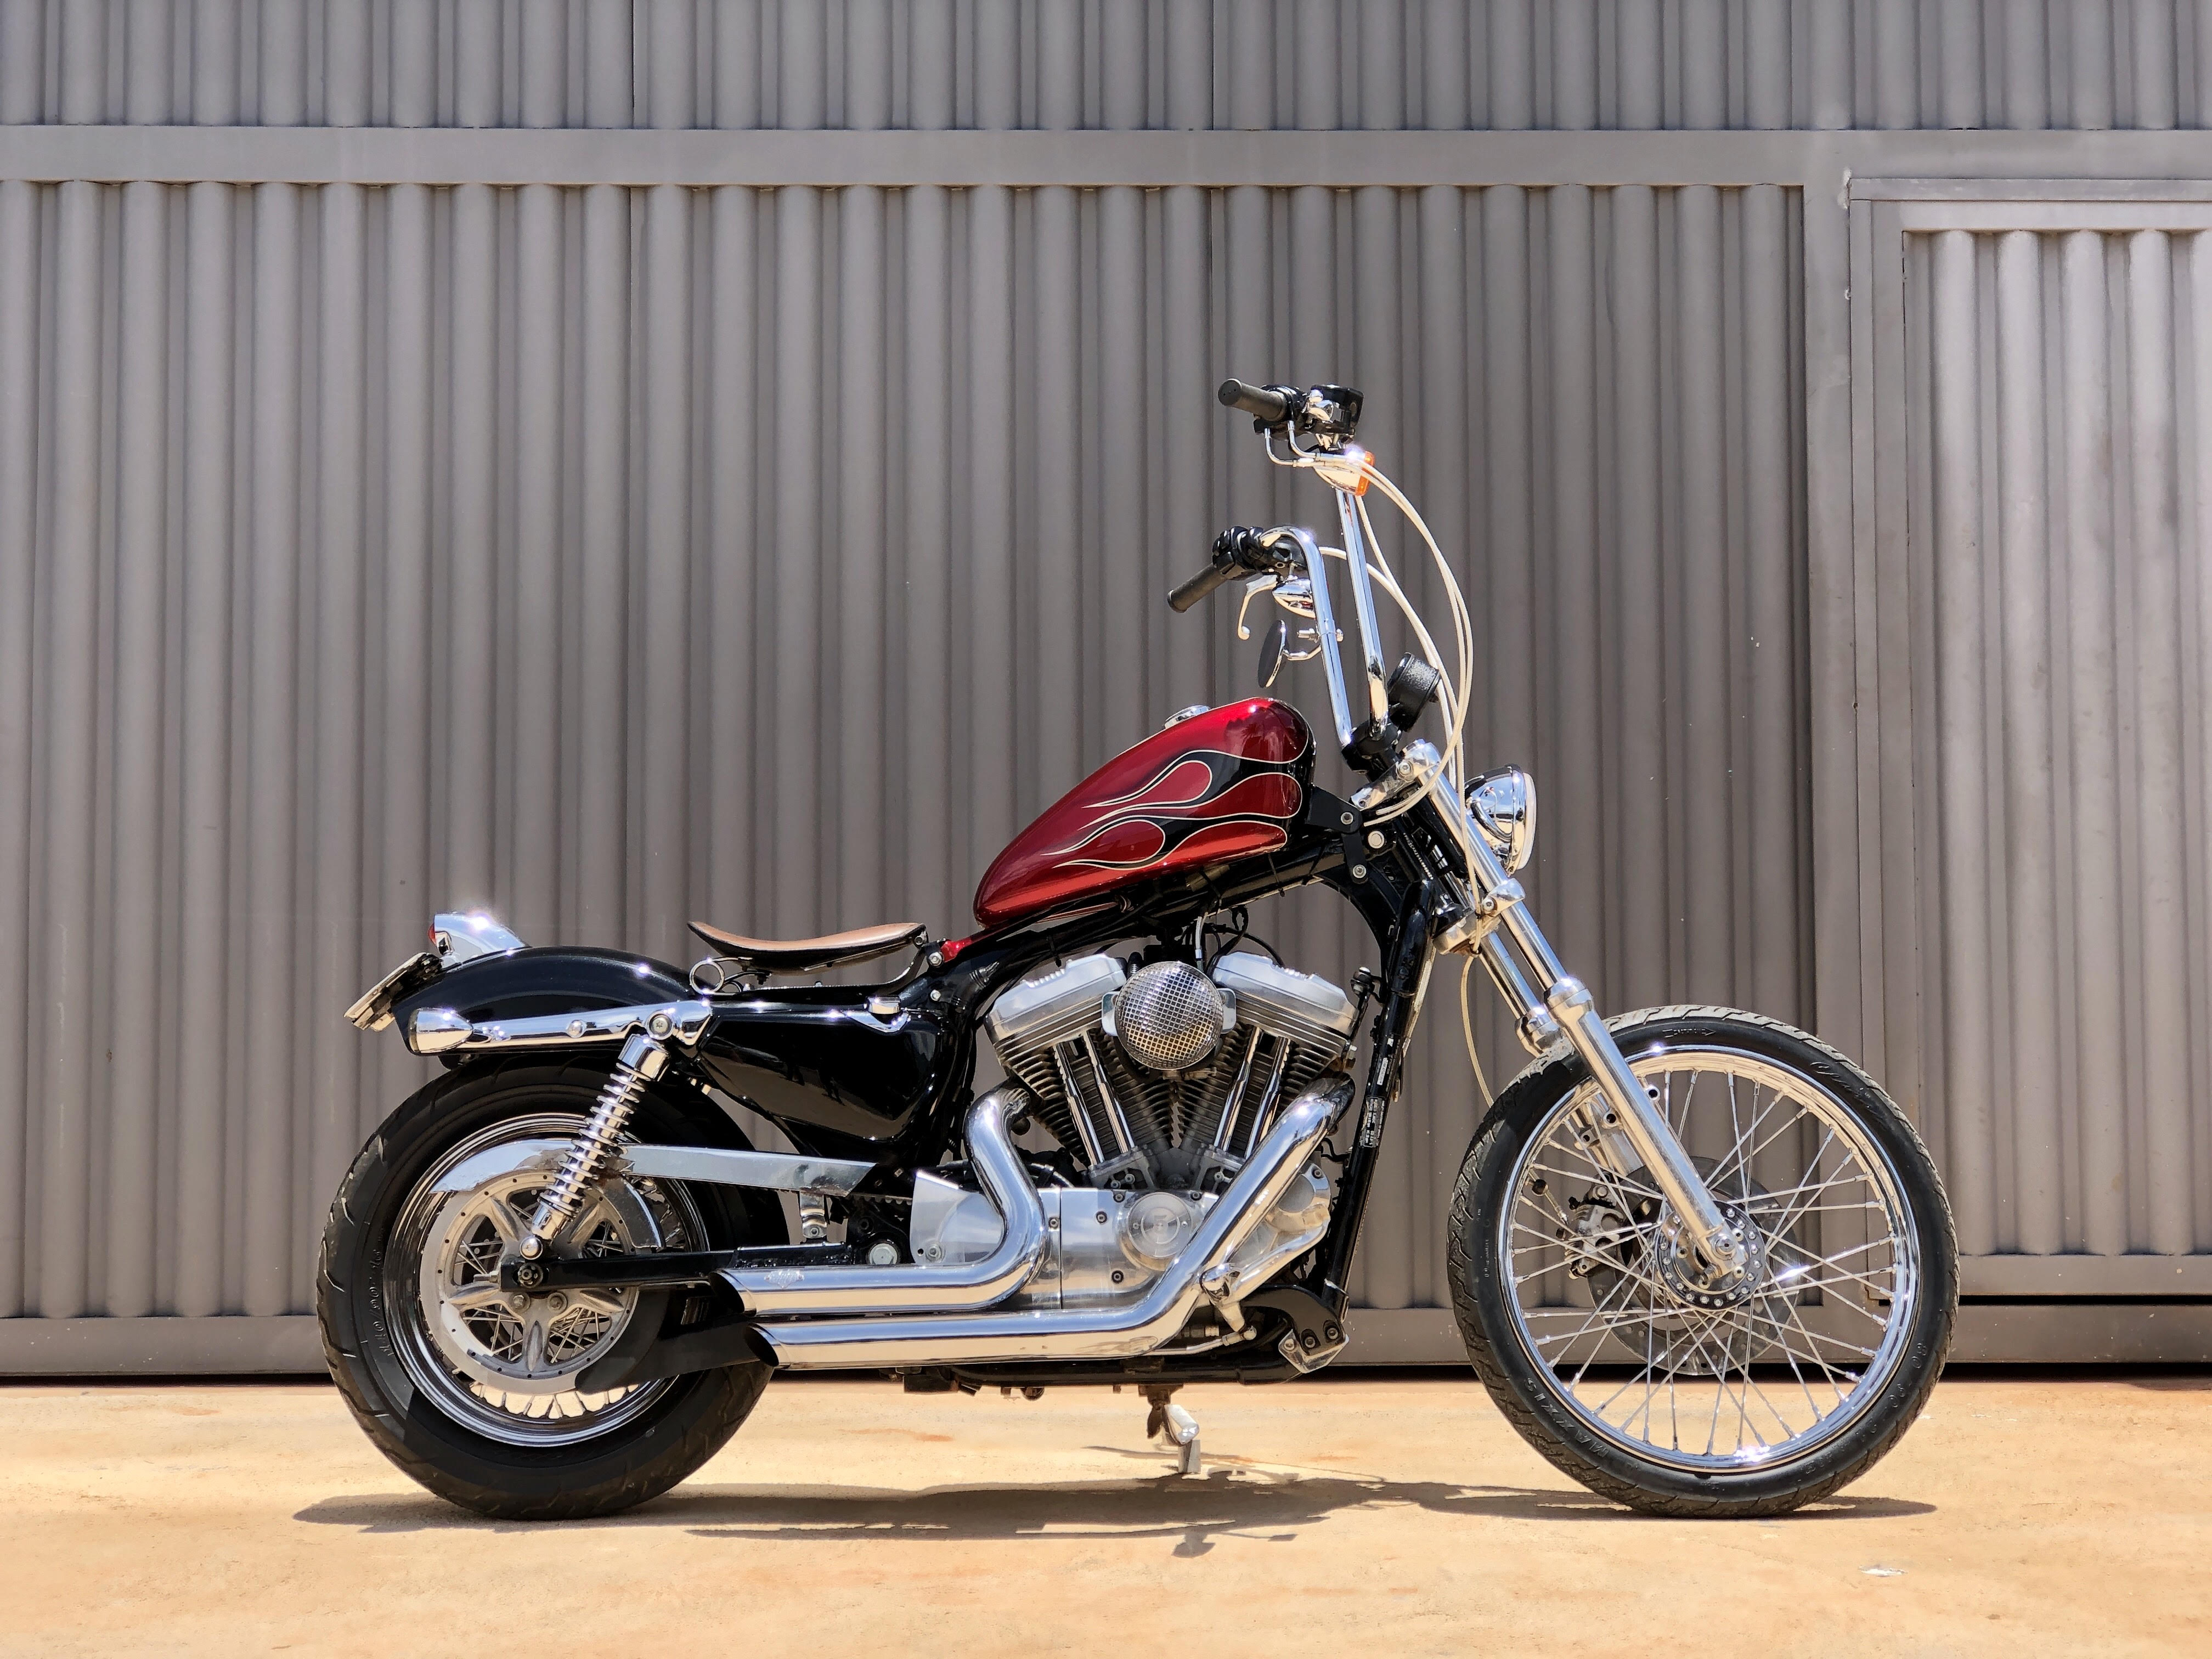 Sportster 2004 - Chopper